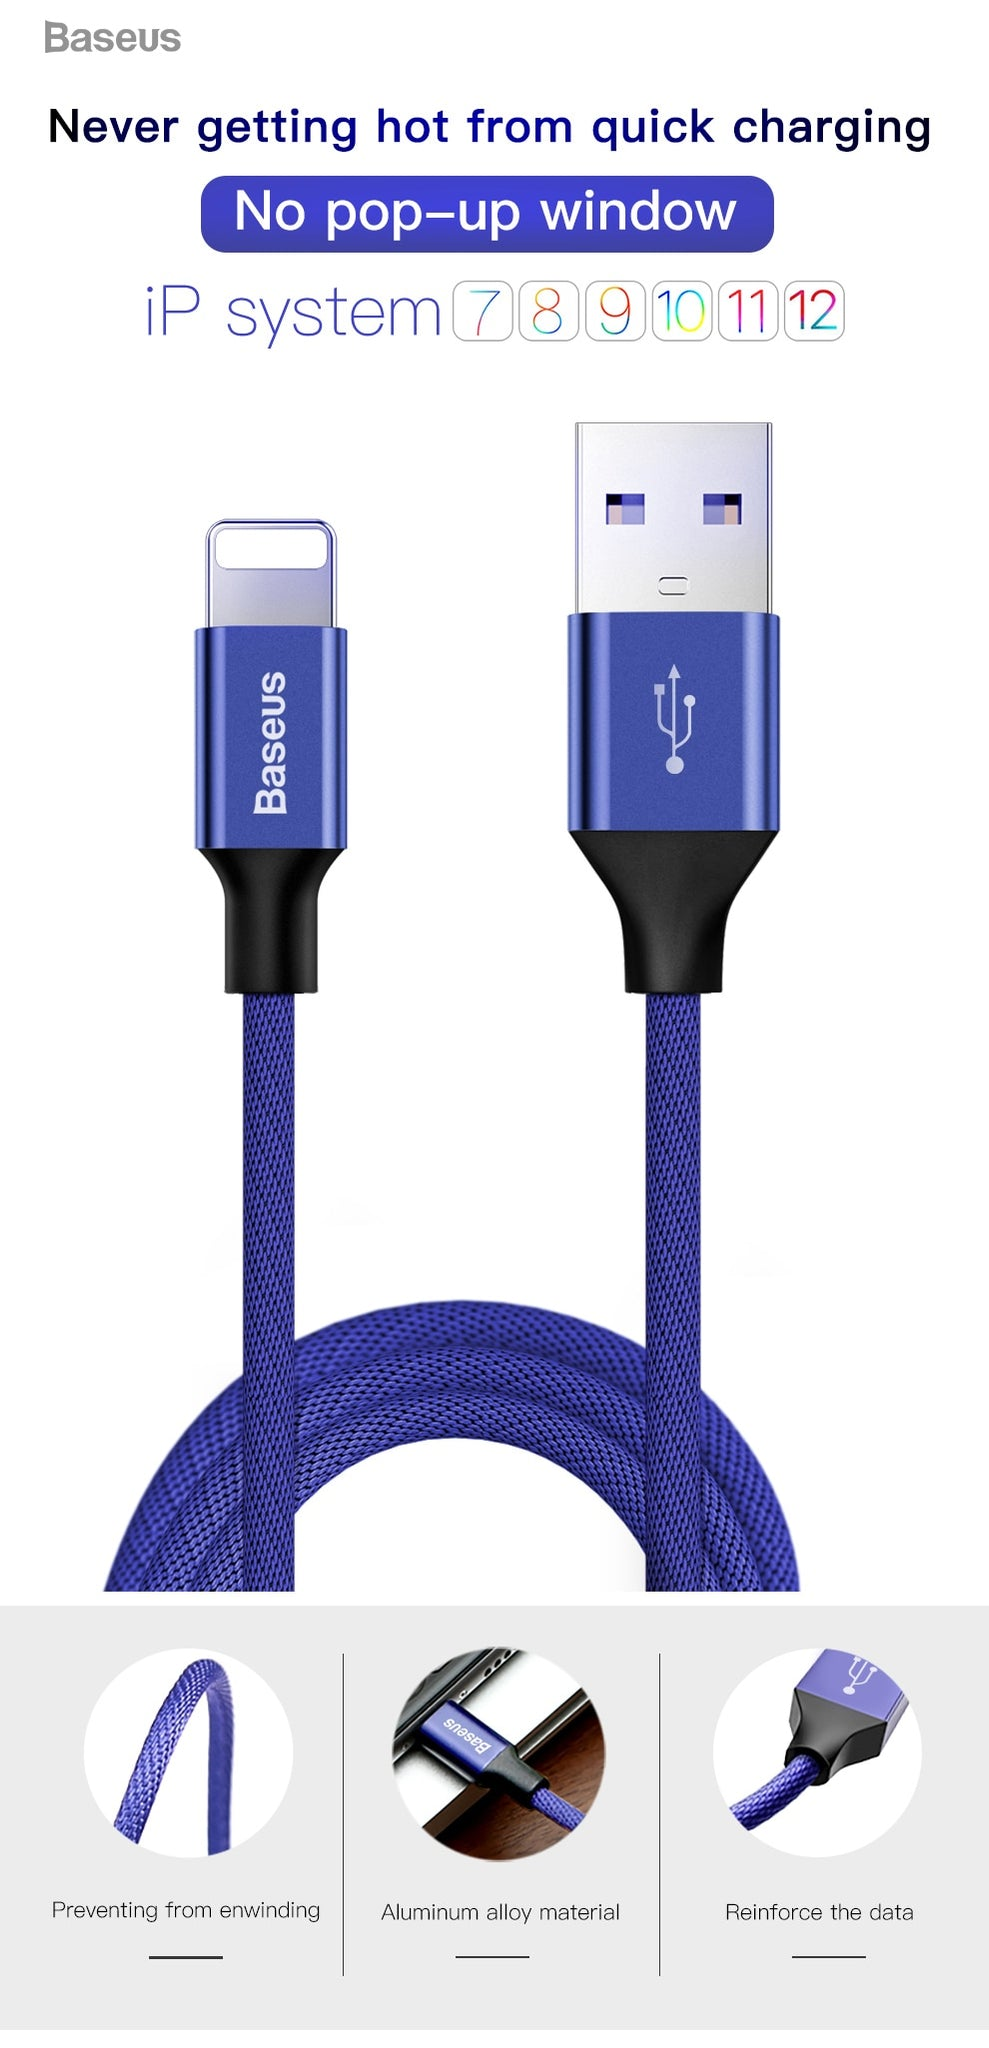 Usb Cable For Iphone Baseus Fast Data Charging Charger Plus To Wiring Diagram Feature Type Cord Mobile Phone Cables